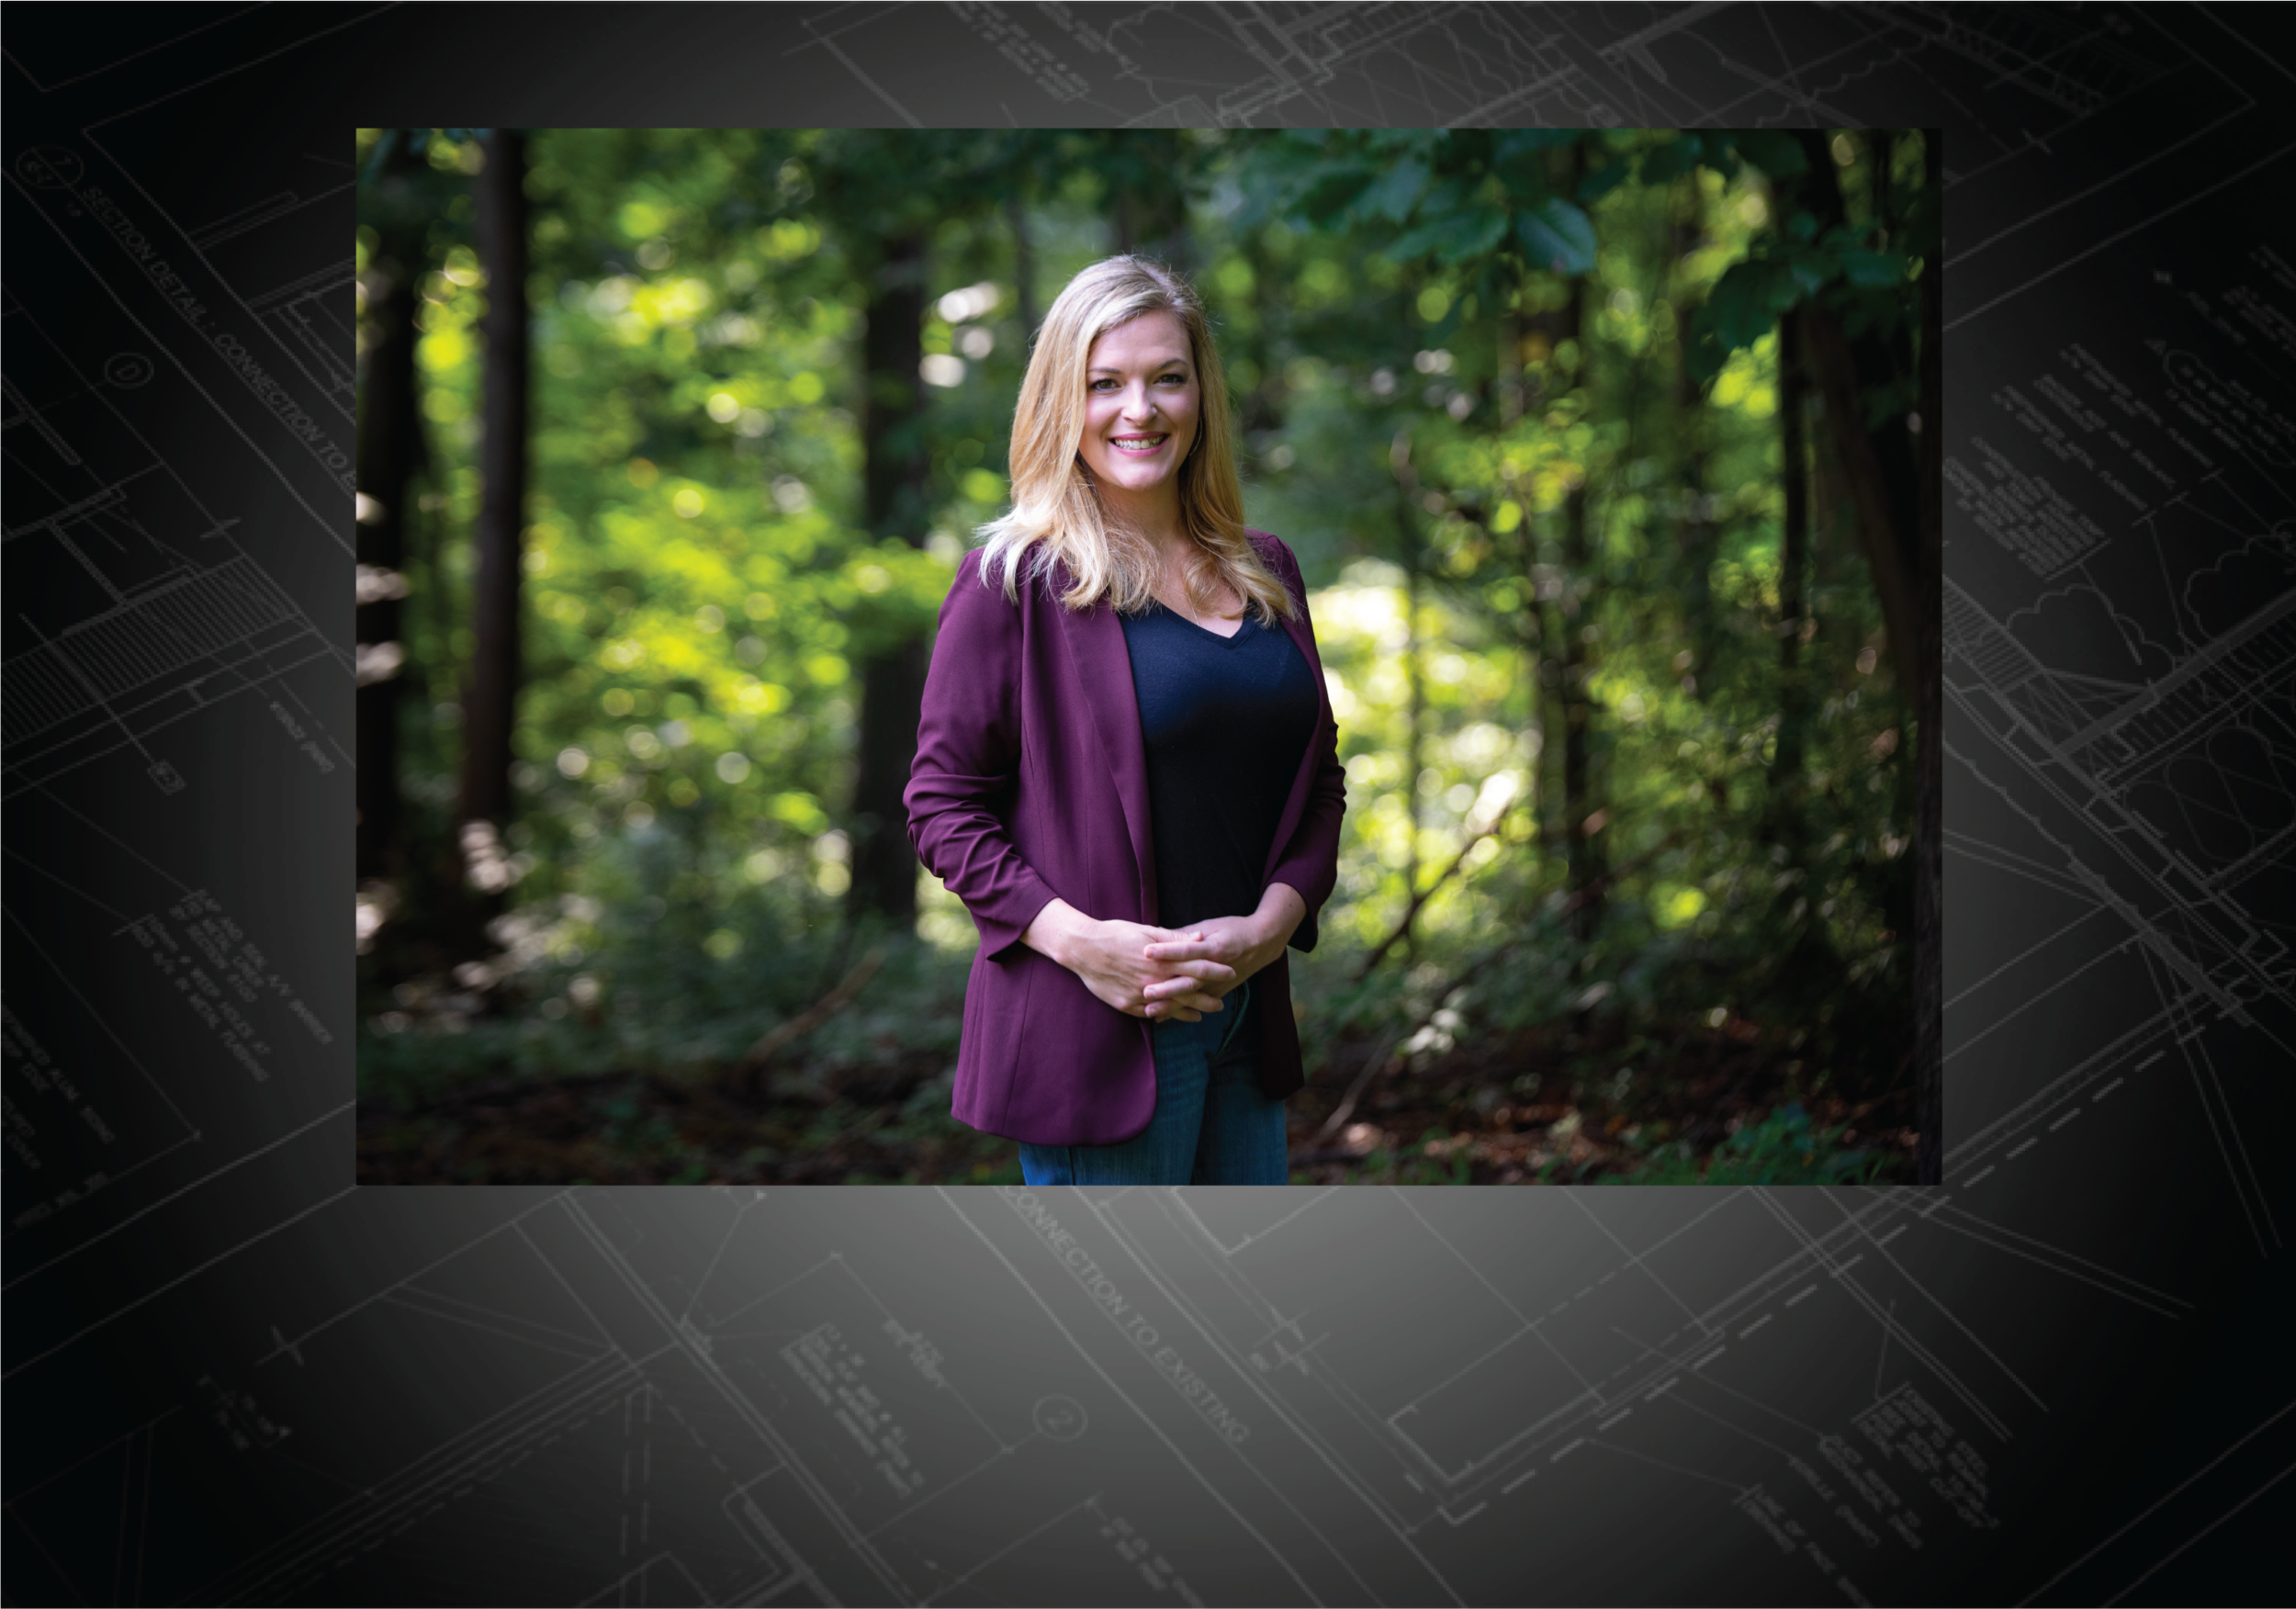 Jasmine Strain, Sales & Client Relations.  Jasmine joins the Cairn Custom Homes team with a background in residential real estate. She holds her real estate license at Keller Williams Realty Centre in Columbia and is loves to assist clients in finding the perfect lot location for their custom home. She enjoys getting to know all Cairn Custom Homes clients, while helping them navigate the custom home building process from start to finish.  Jasmine holds a B.F.A from the University of the Arts in Philadelphia and grew up in Baltimore County. In her off time you can find her working alongside her husband at Pure Wine Cafe, traveling, or attending local art events in the MD and DC region.  She currently resides in Clarksville, Maryland with her husband, son and two sweet pups.